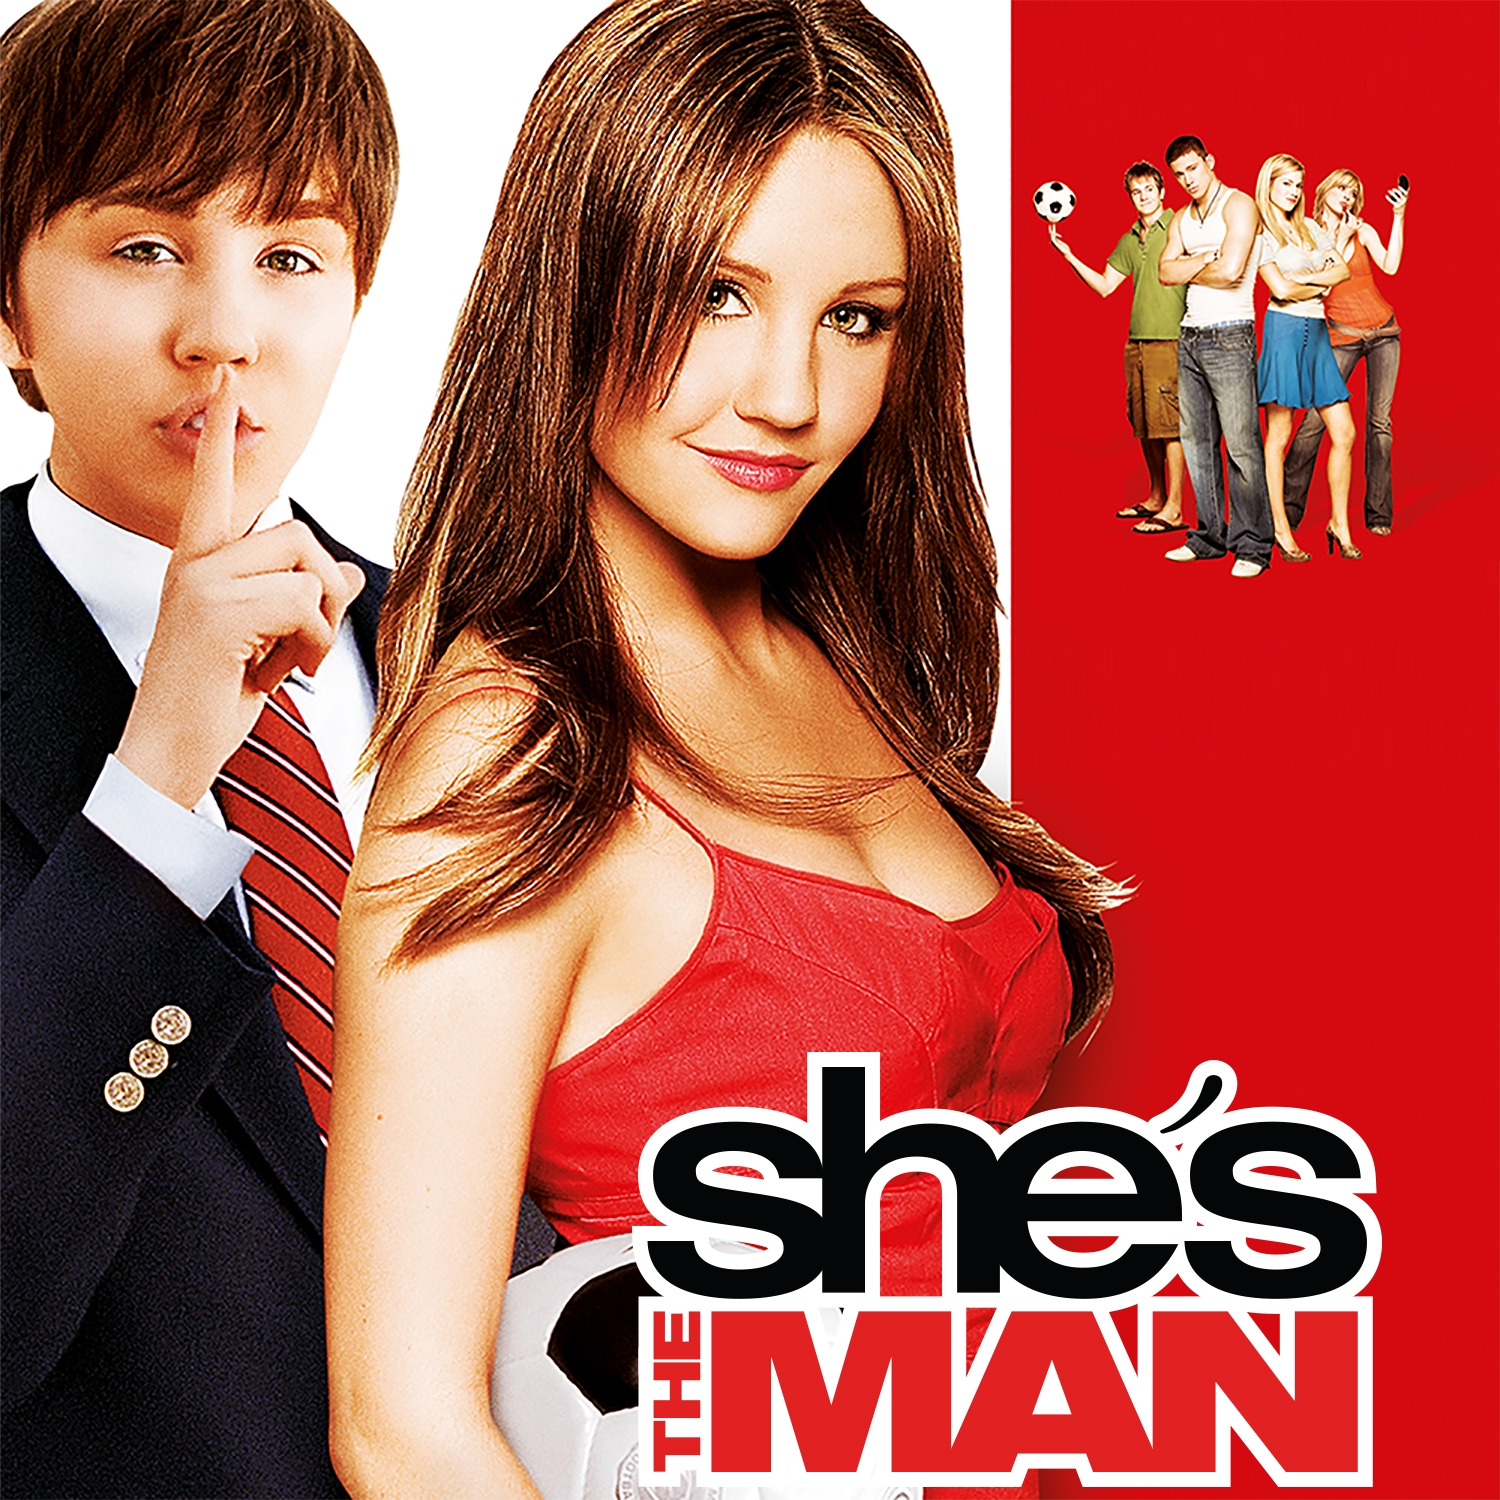 Stream She S The Man Online Download And Watch Hd Movies Stan